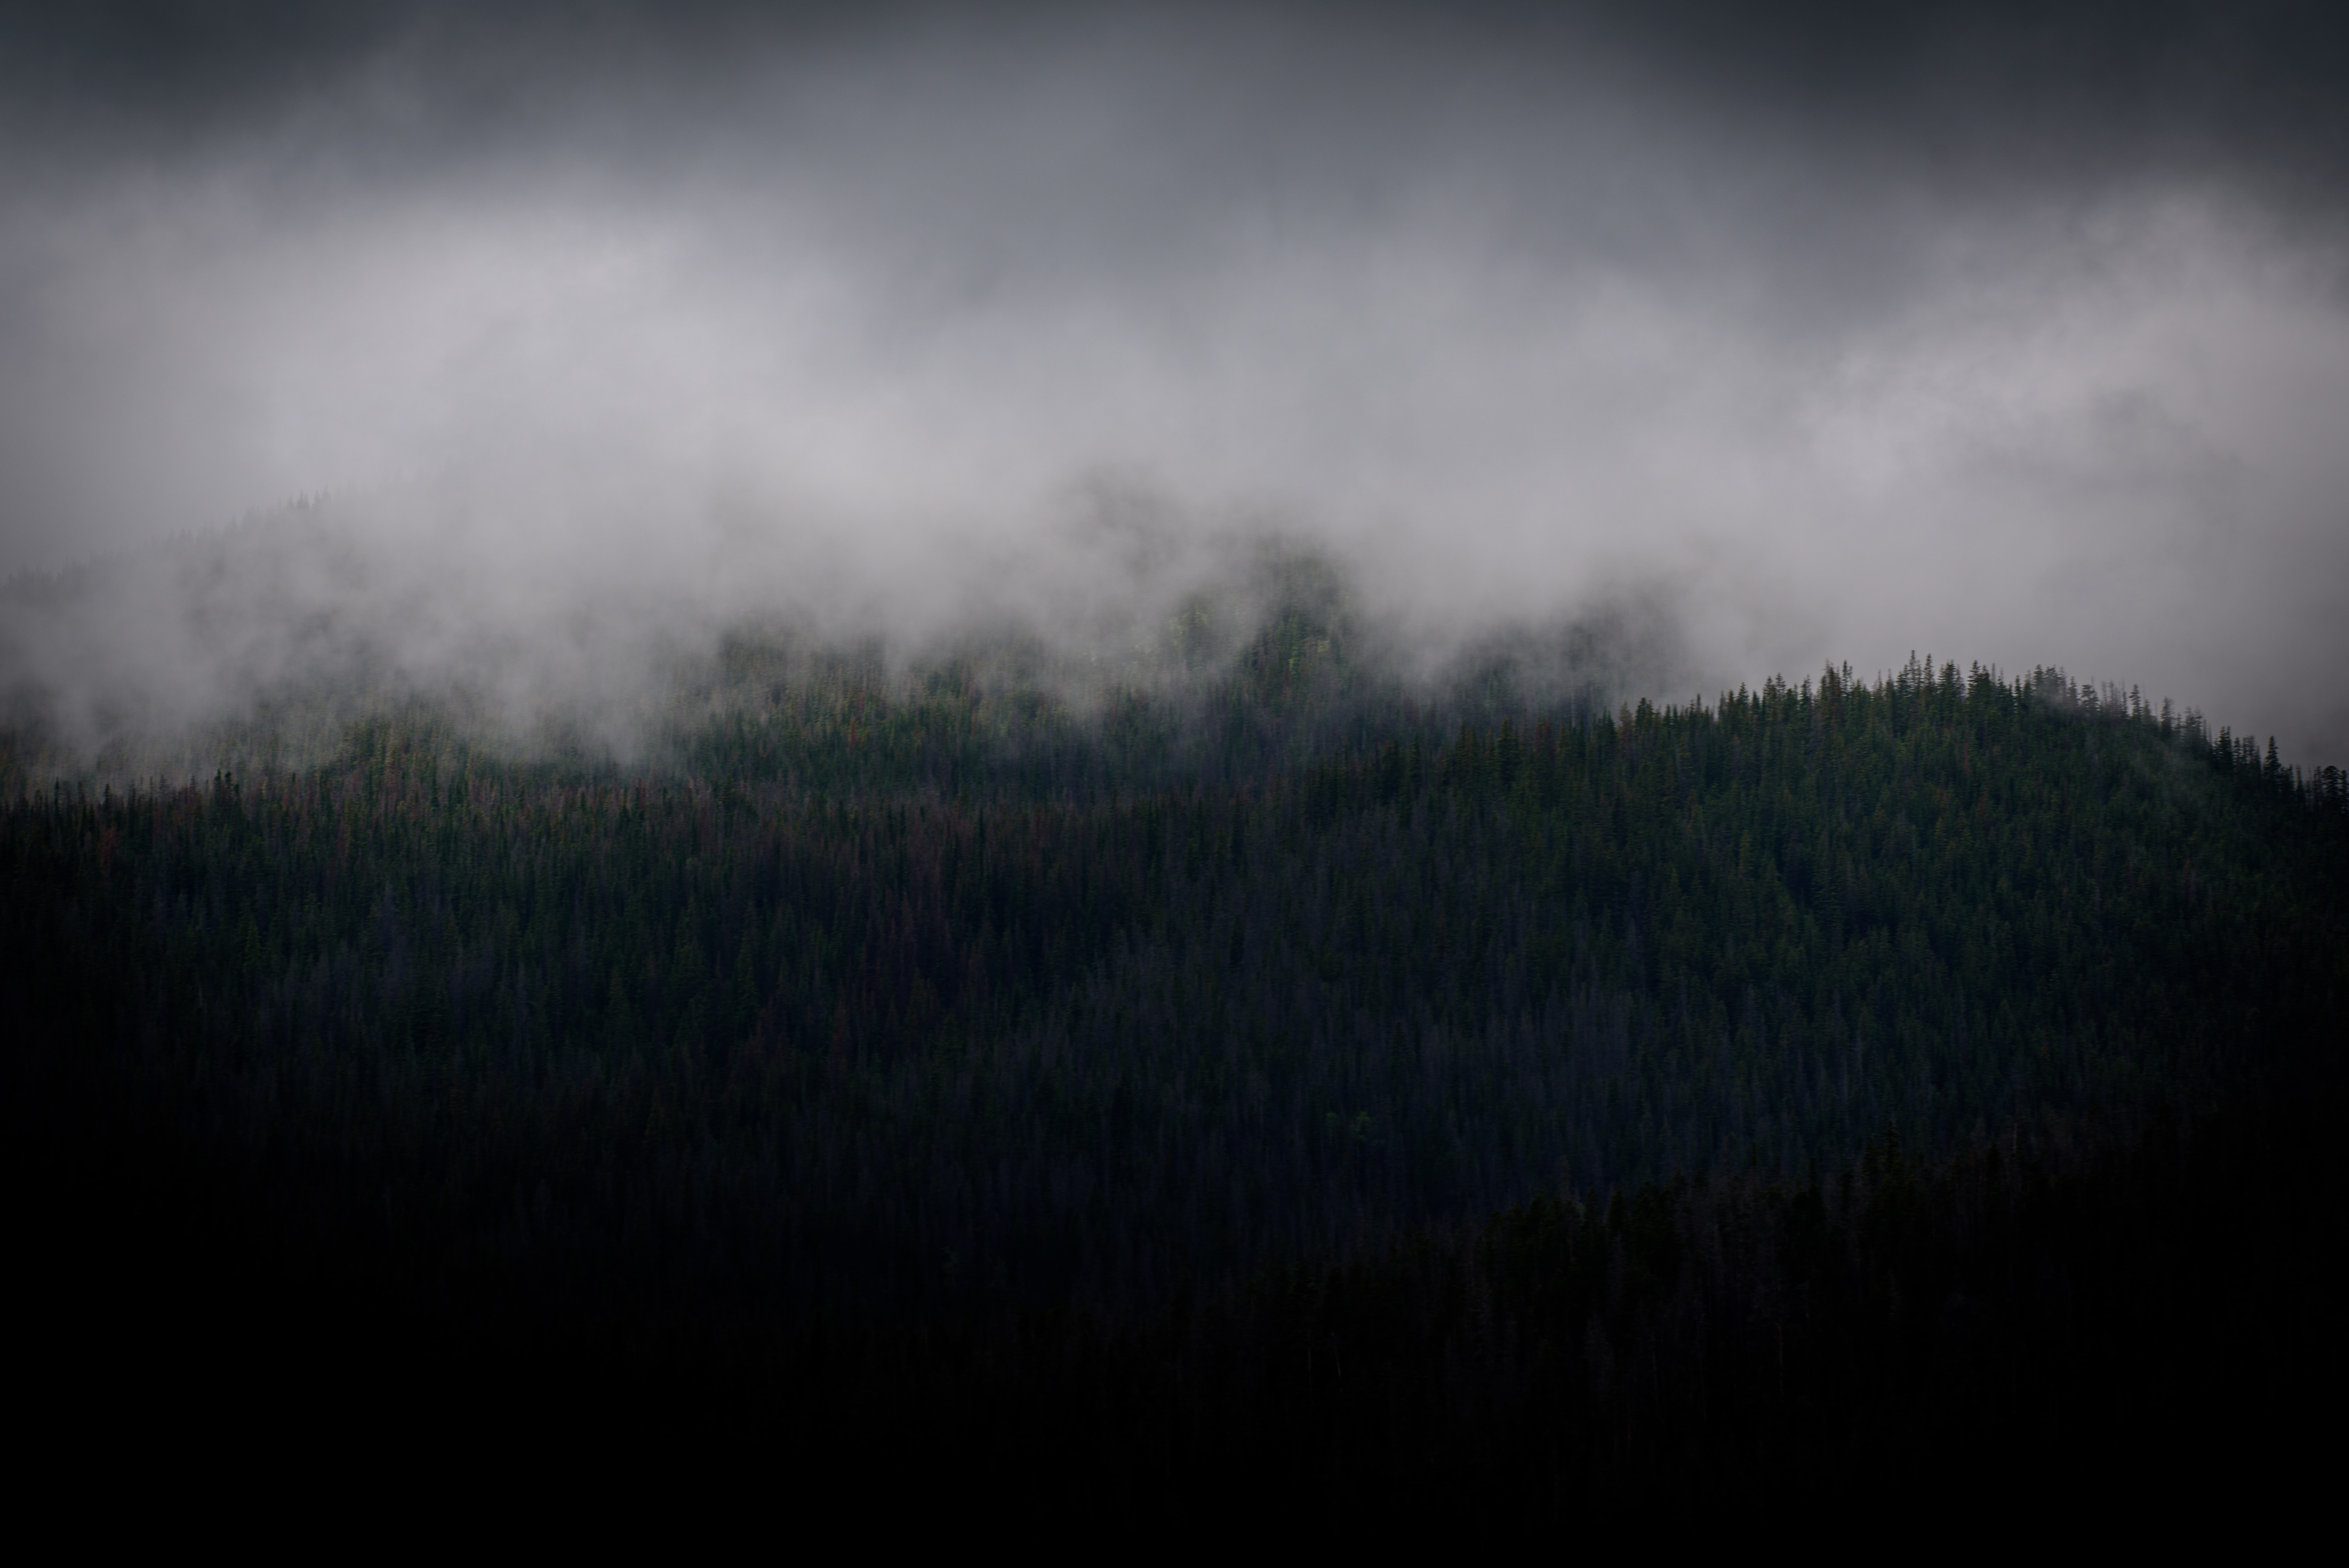 A haze over an evergreen forest in Colorado